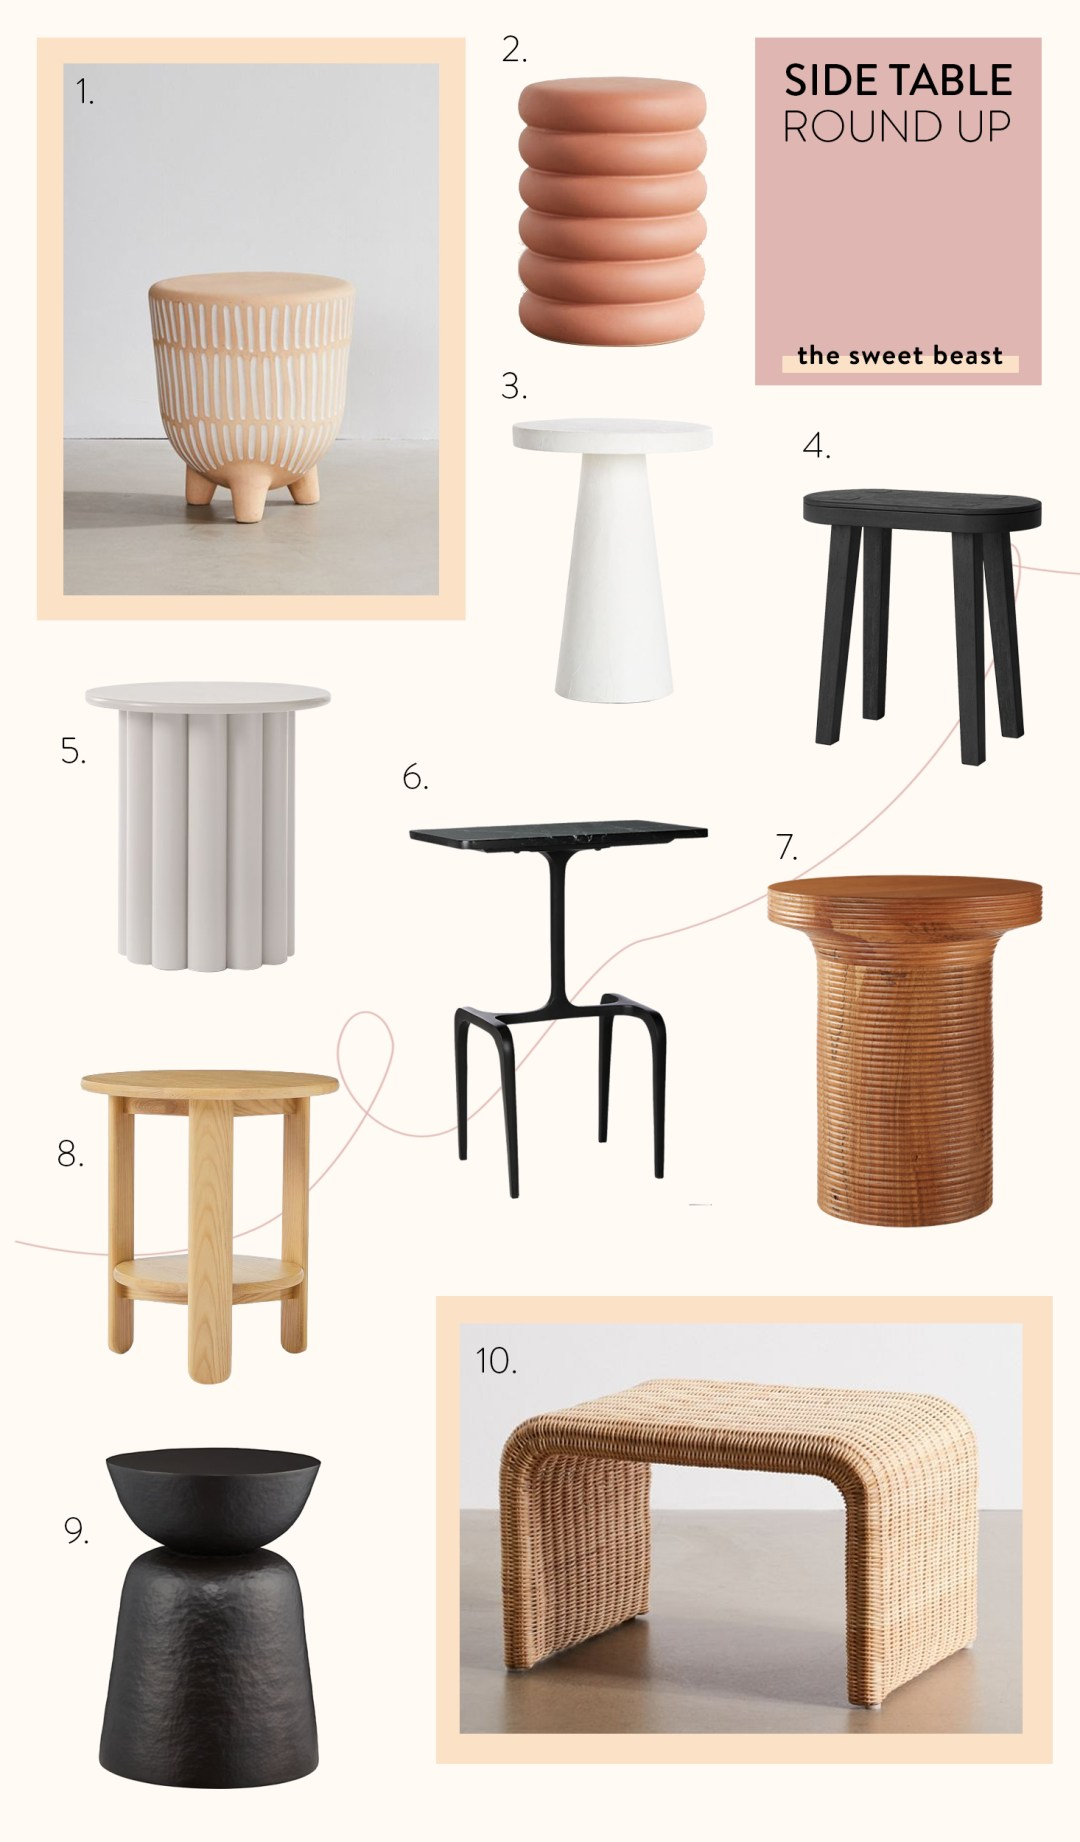 Side Table Round Up